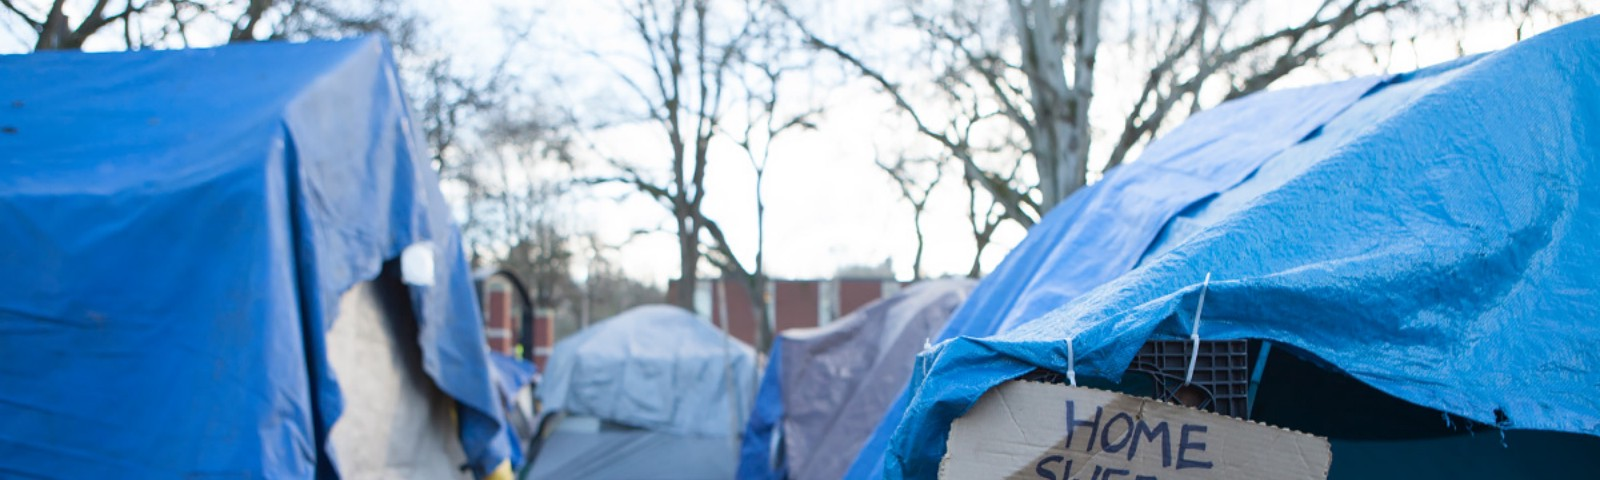 Image of a tent city with blue tarp covered tents. A tent in the foreground has a cardboard sign hanging from it